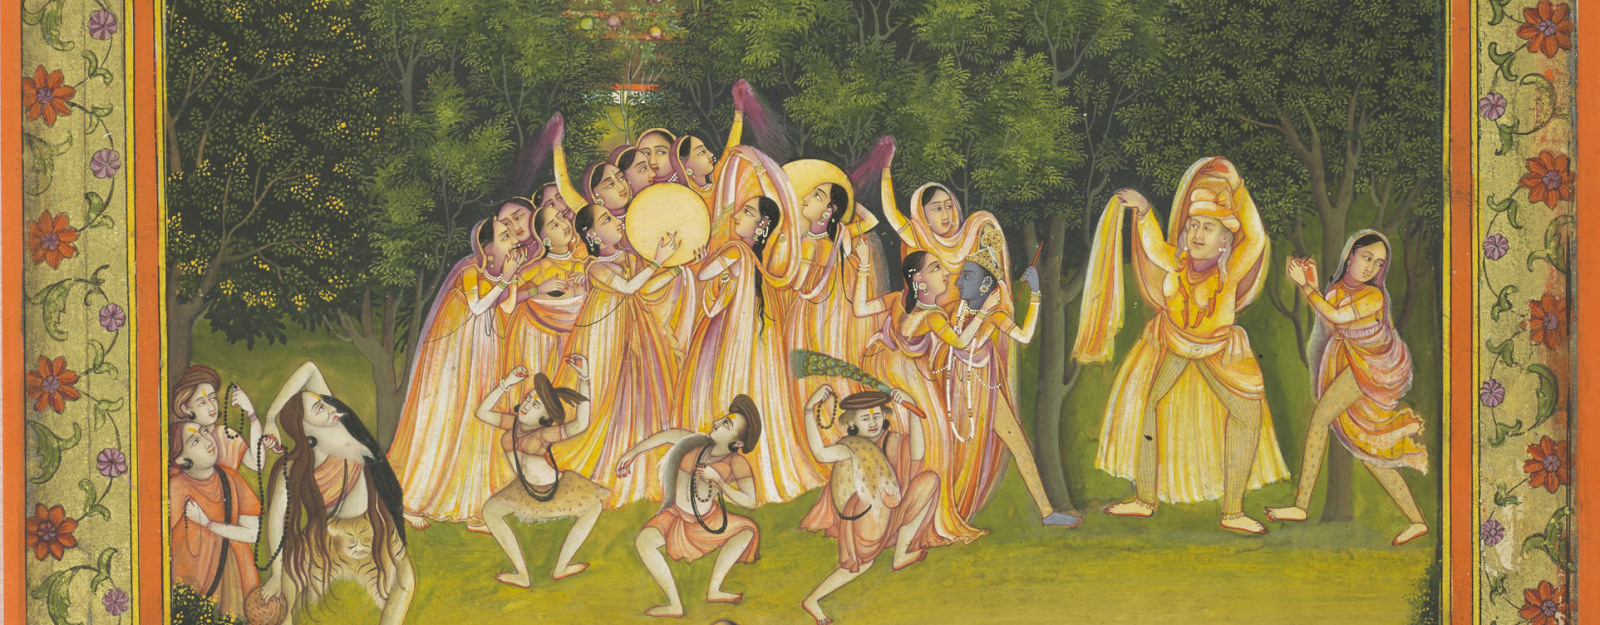 Krishna and the gopis celebrate holi